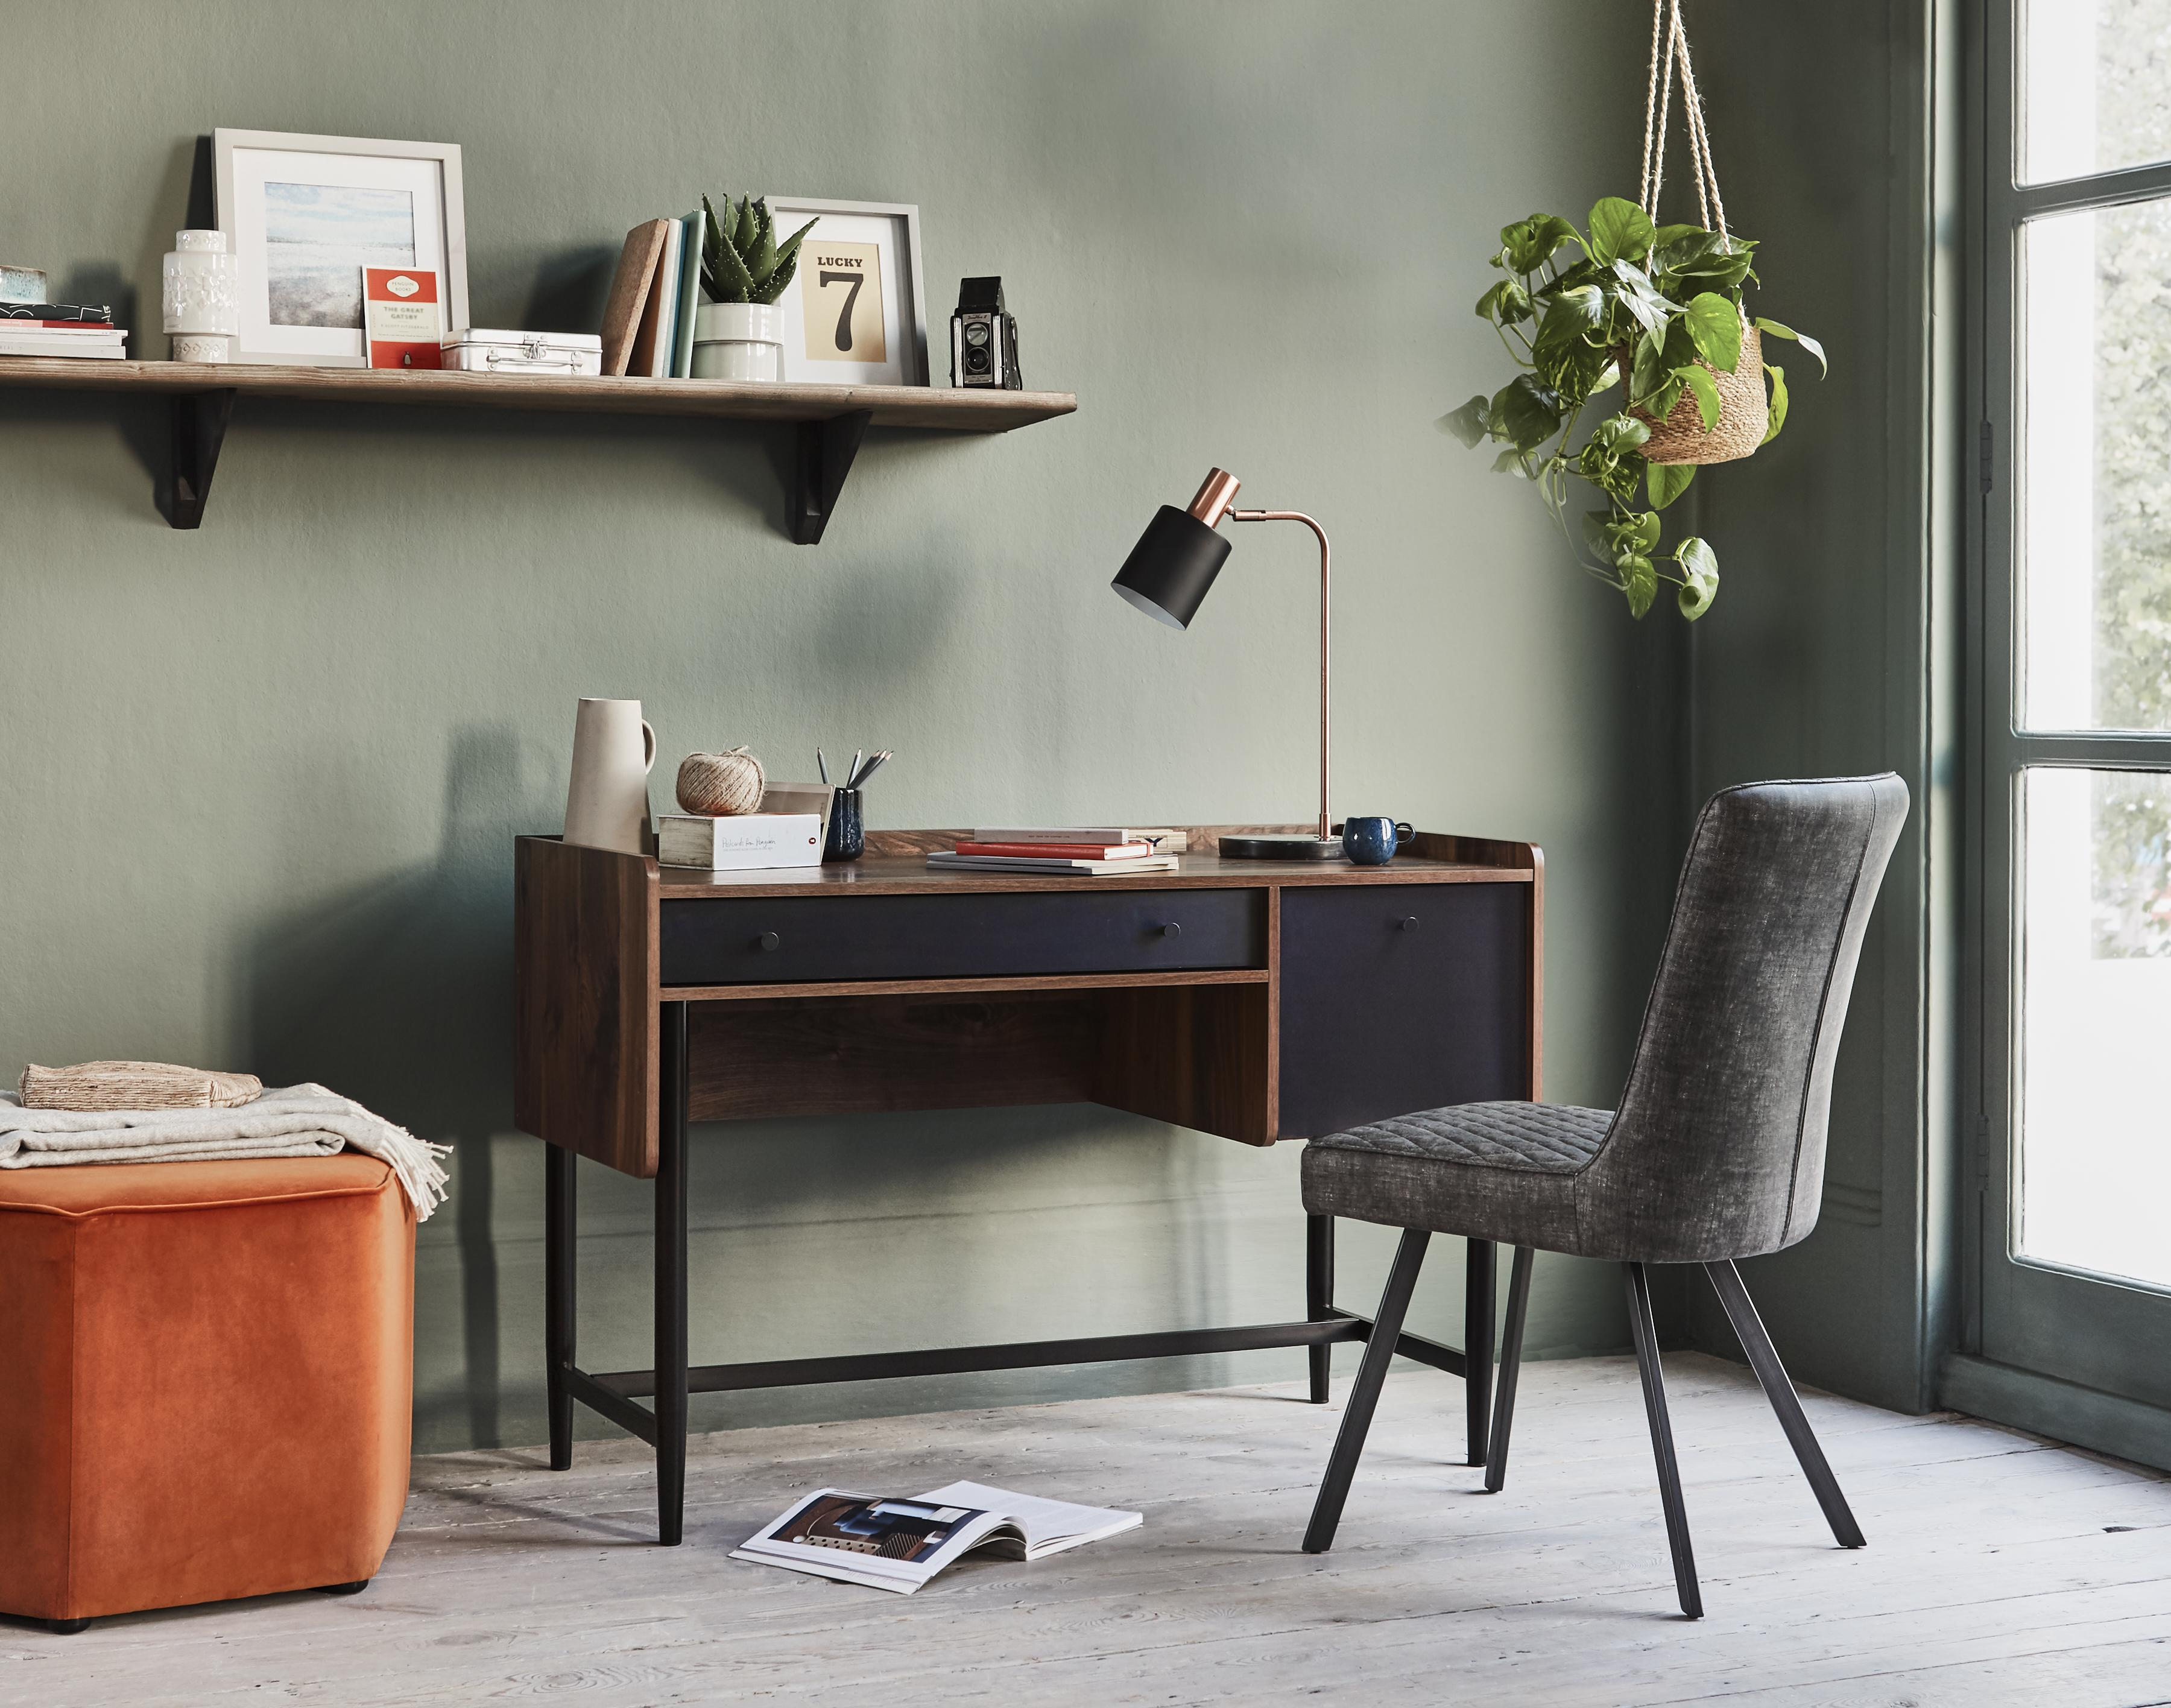 Small bedroom storage ideas – desk.